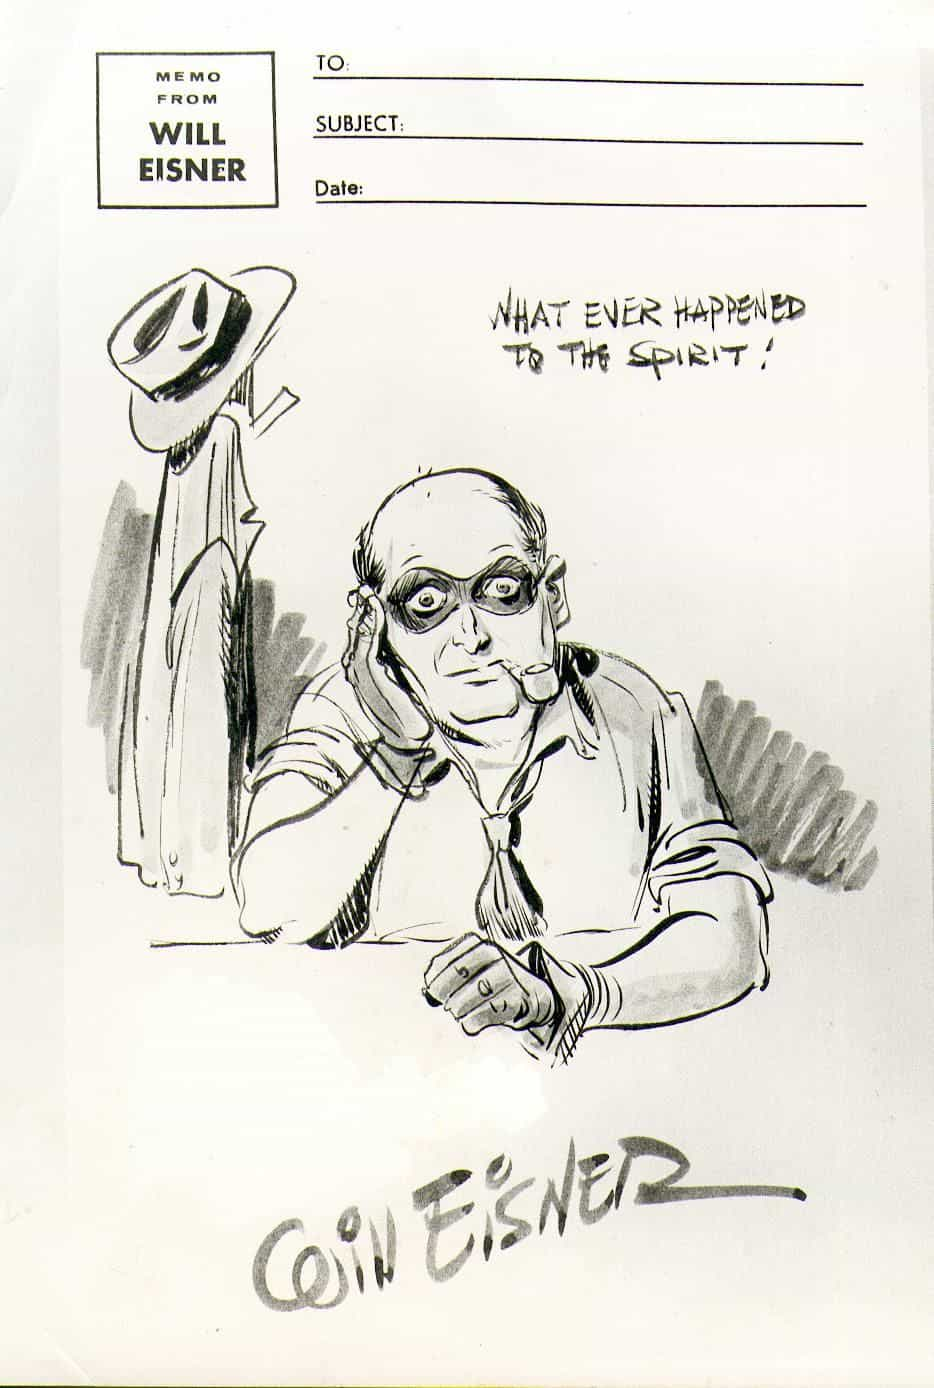 INTERVIEW DE WILL EISNER